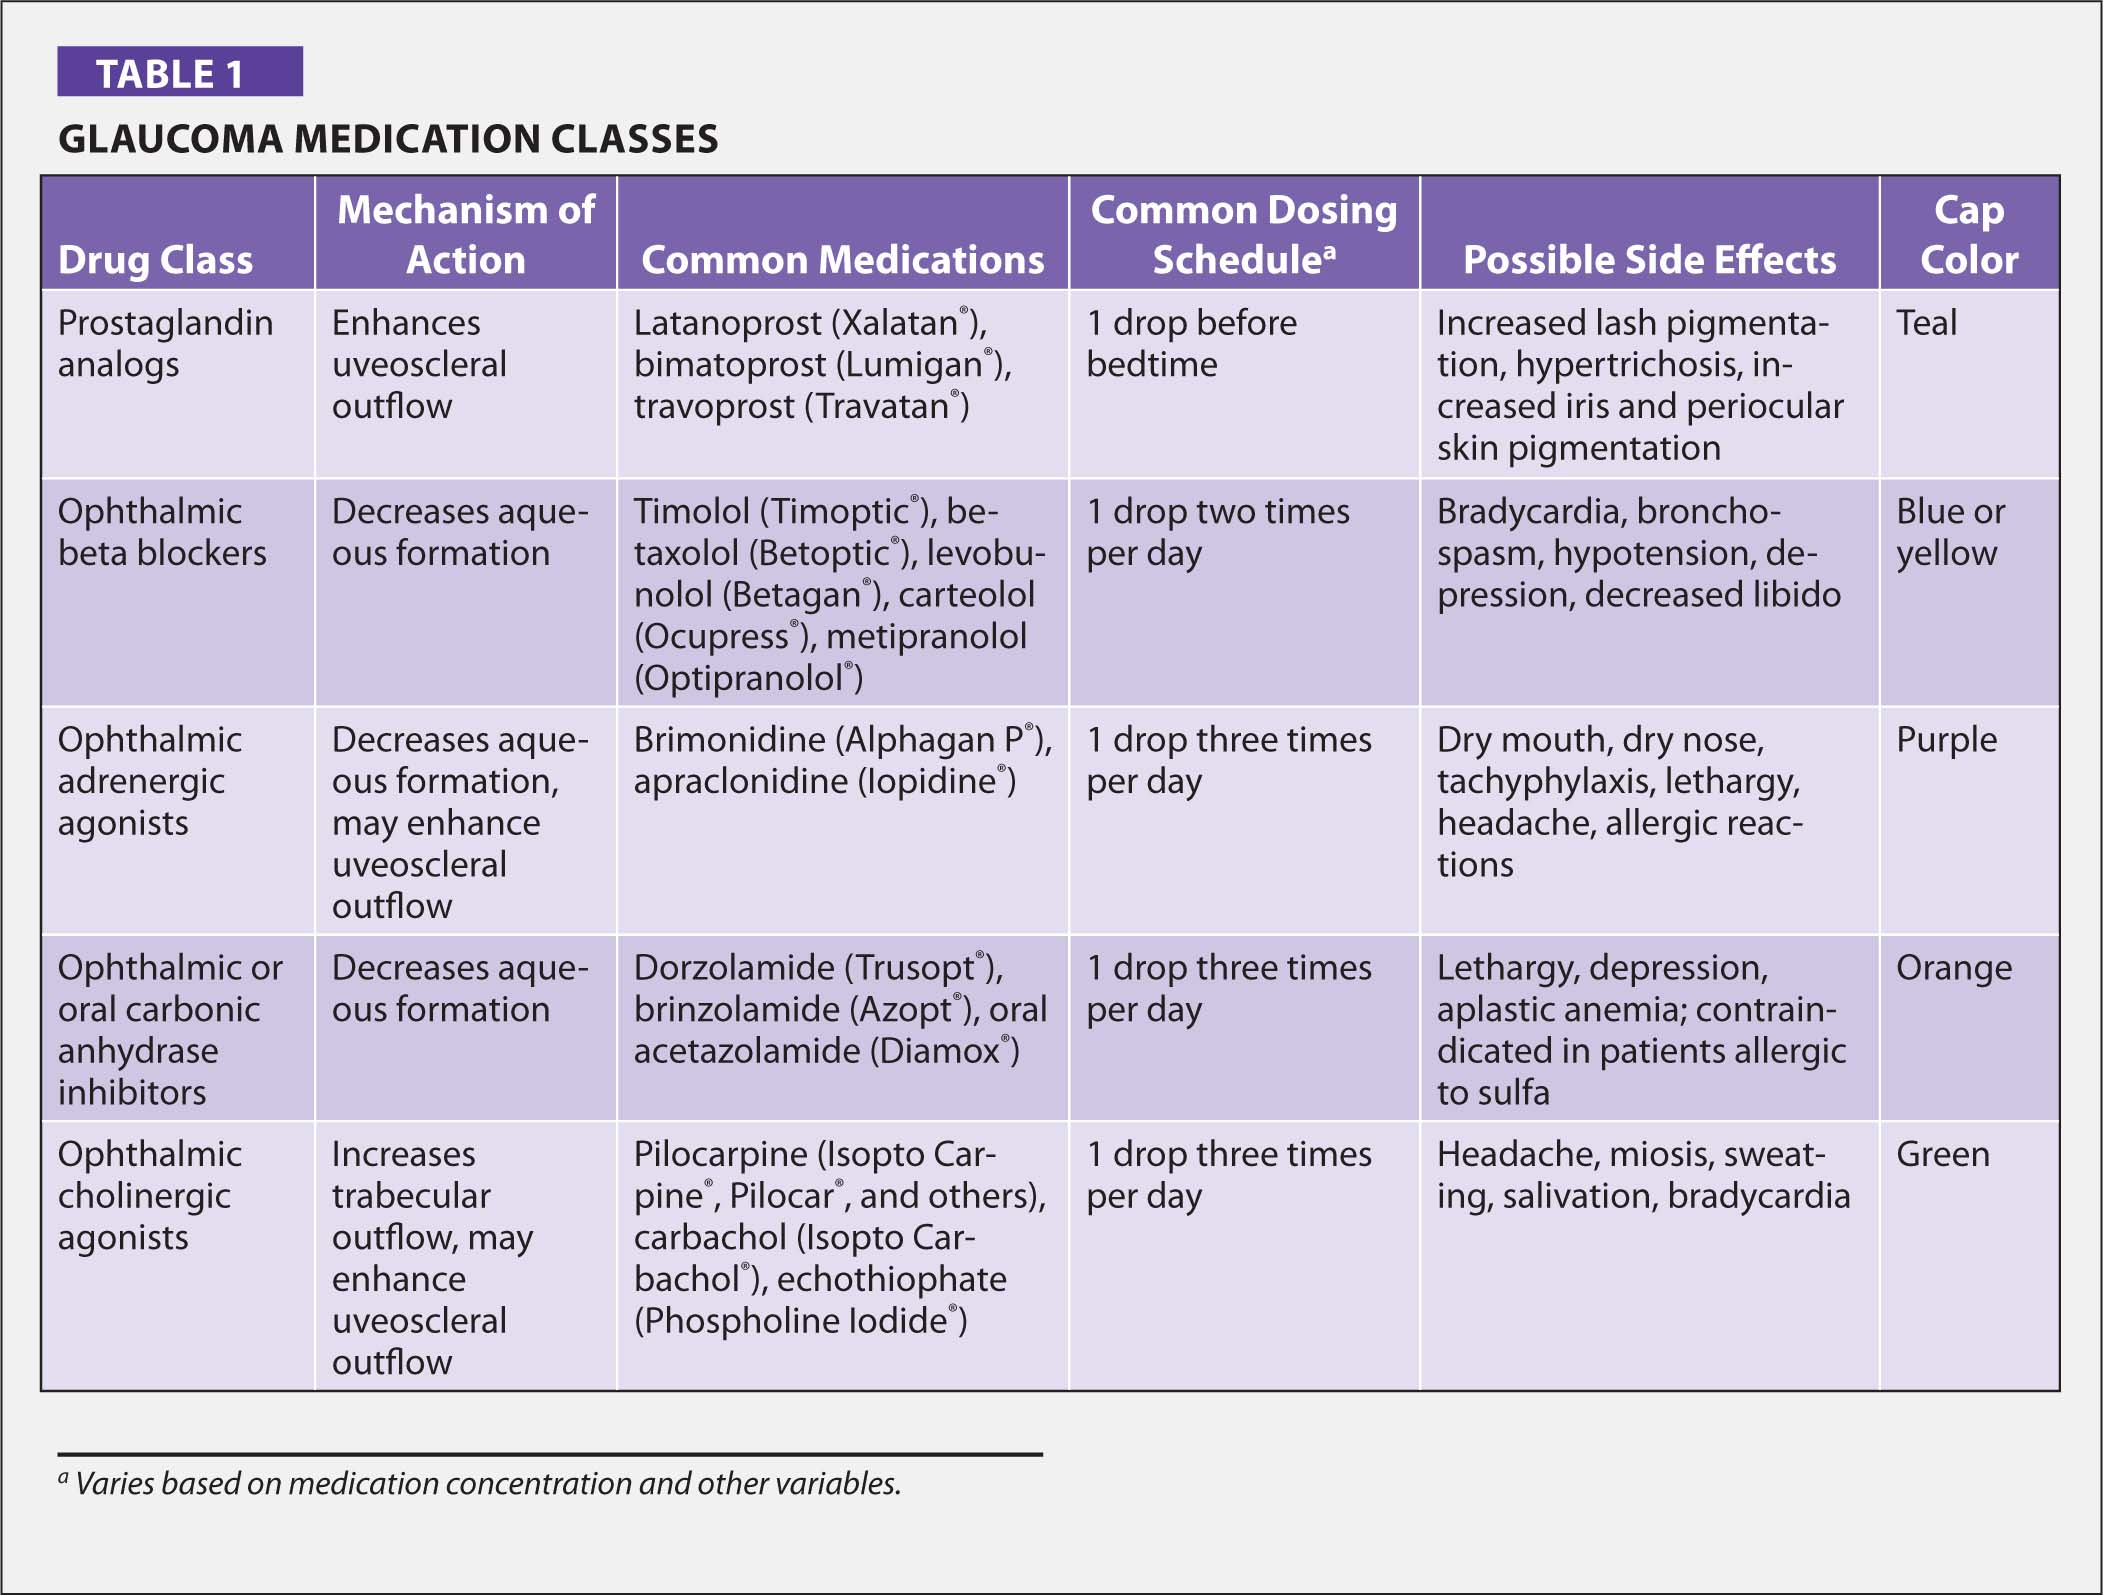 Glaucoma Medication Classes